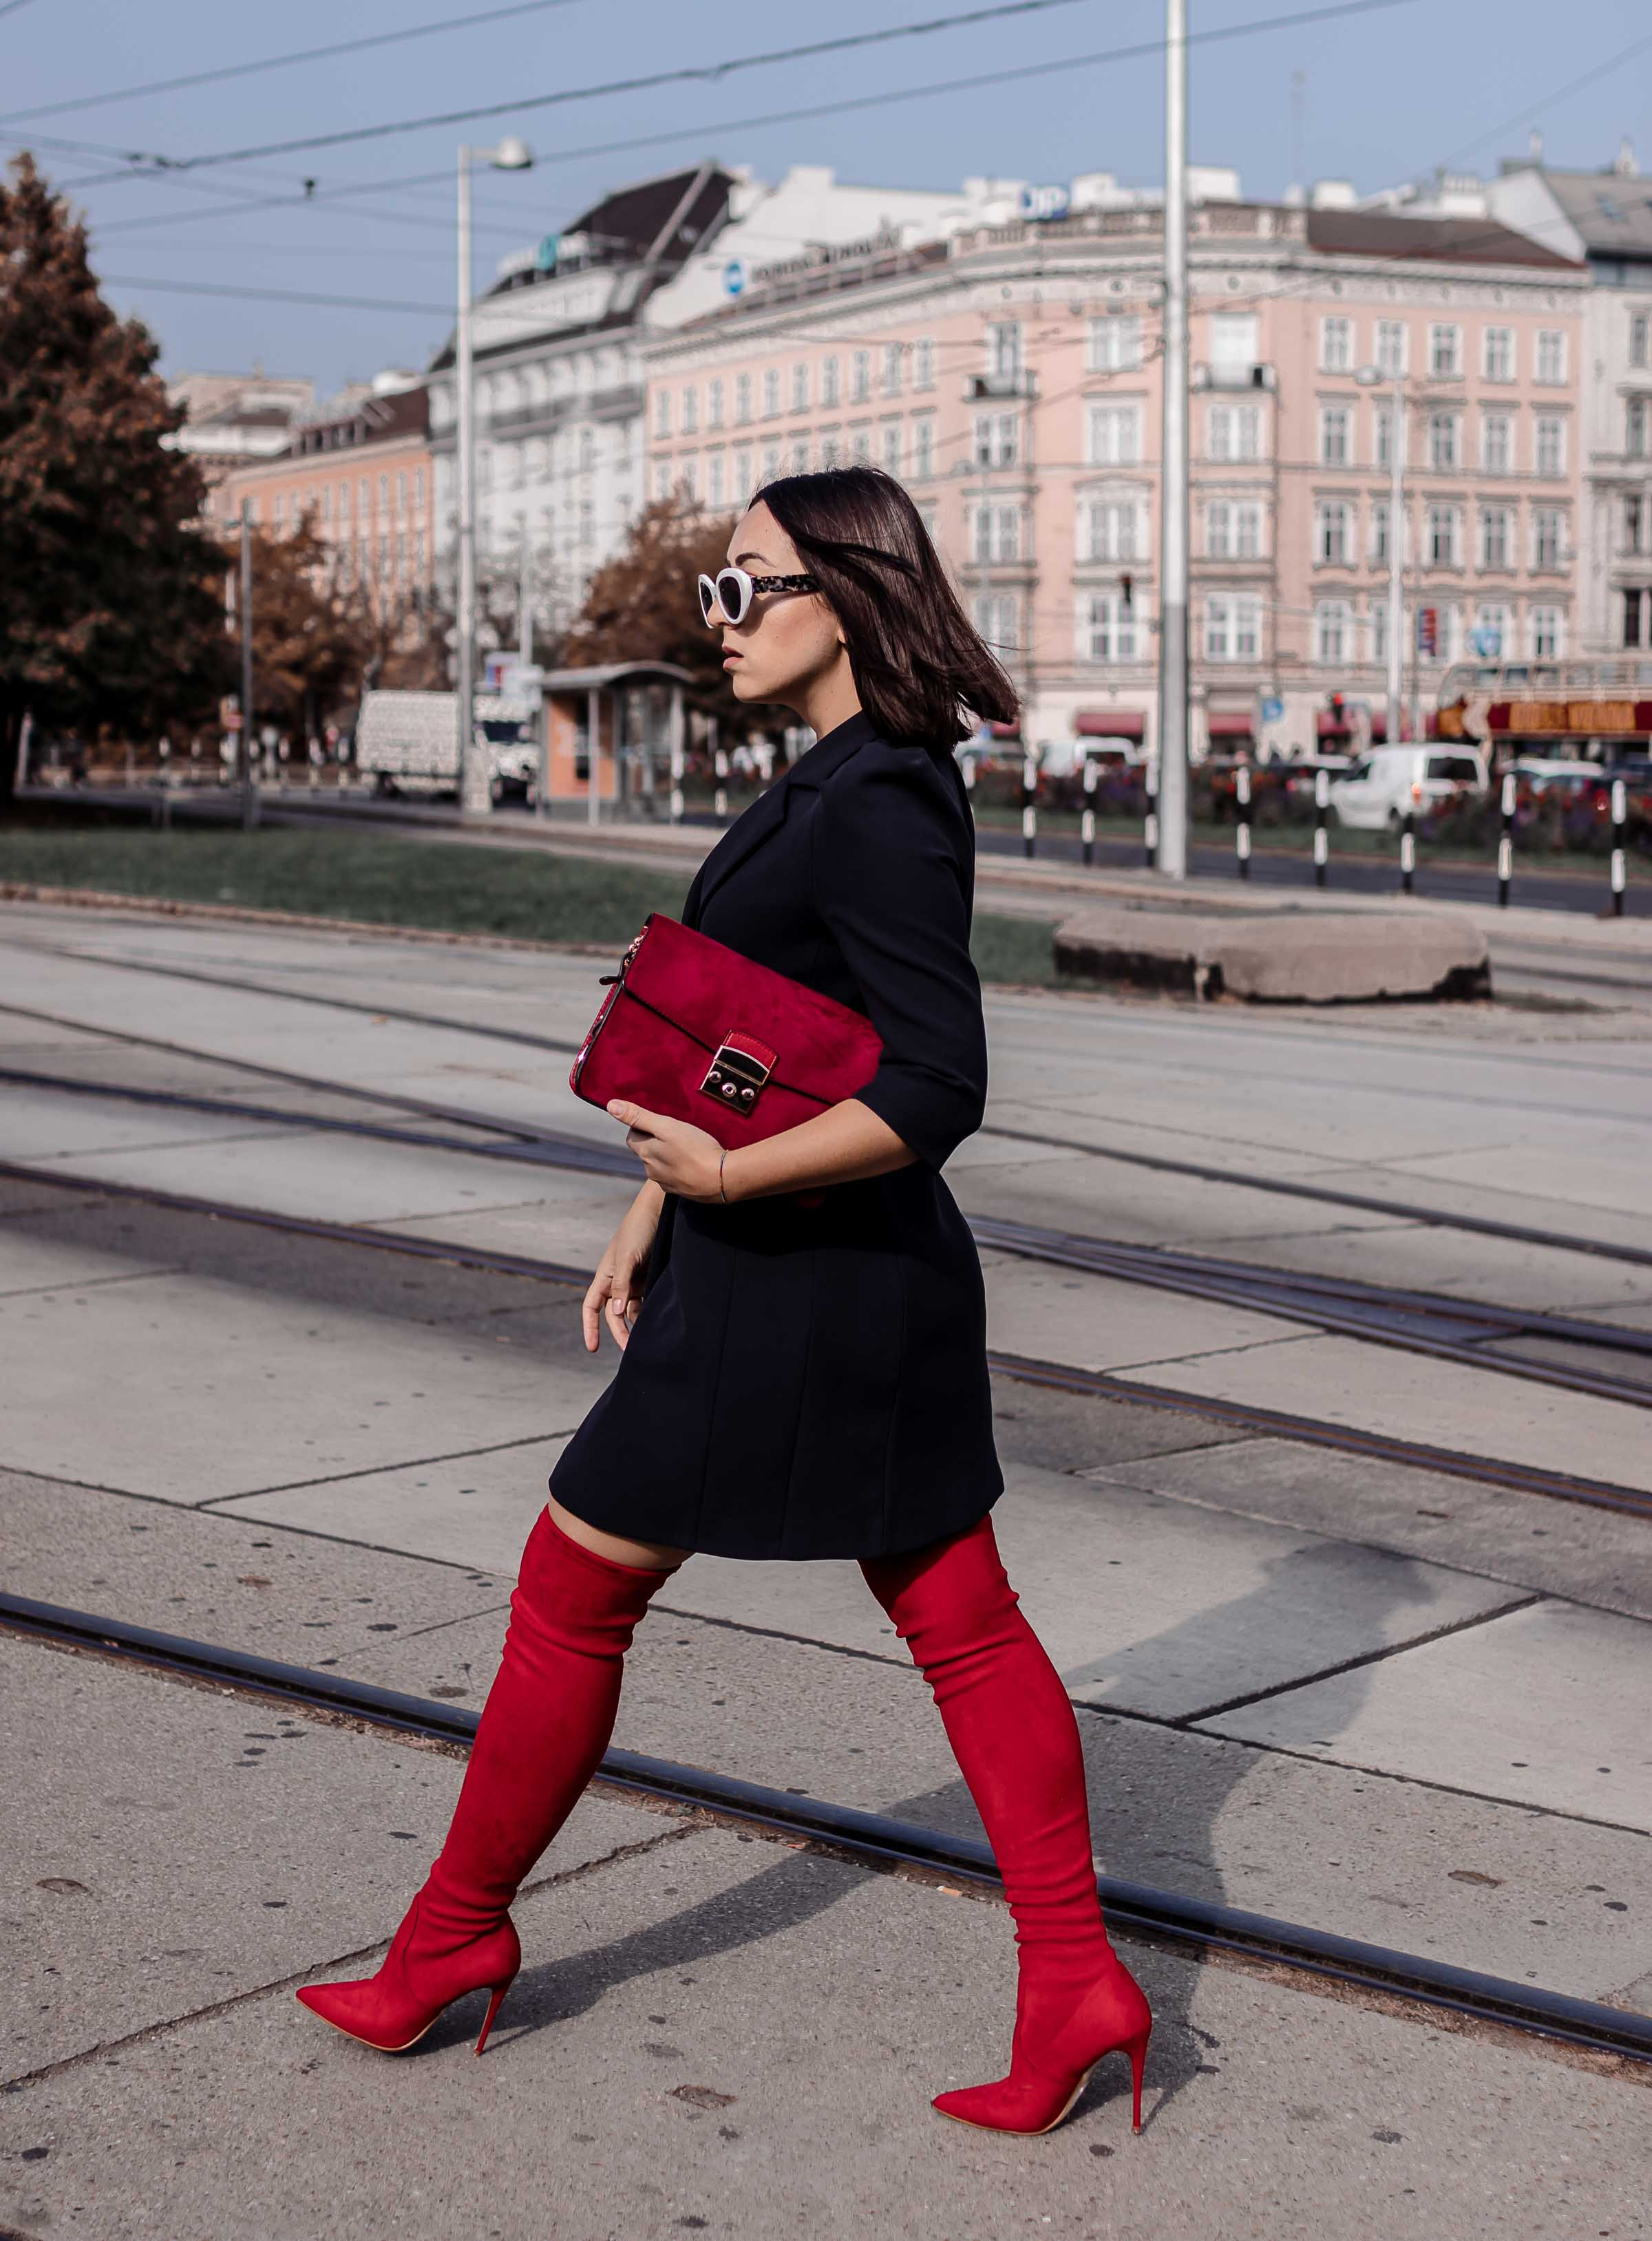 Rote Overknees Styling Tipps